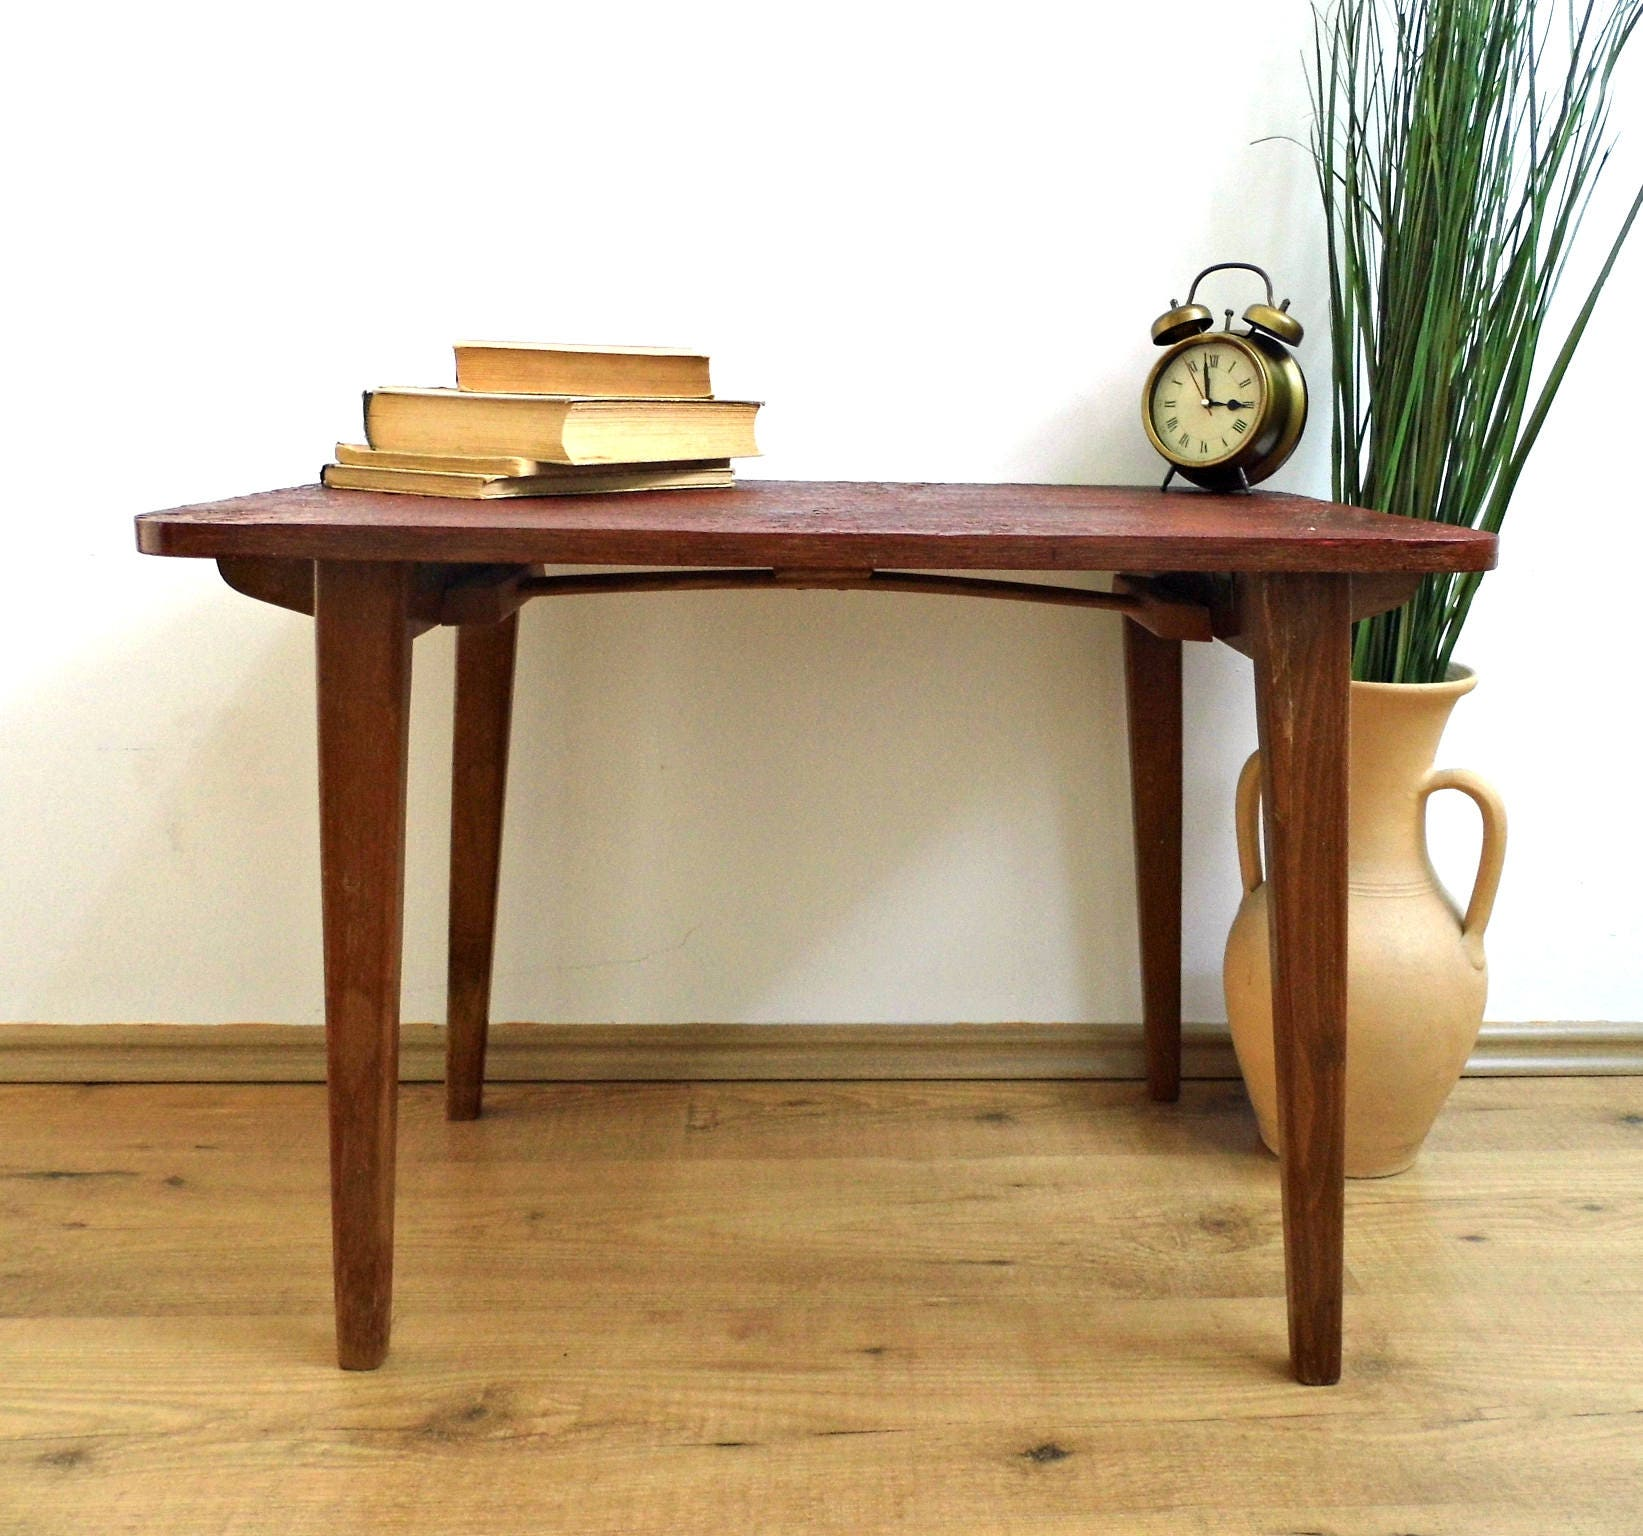 Antique Coffee Table With Folding Sides: Vintage Folding Coffee Table Lace Top End Side Table Mid